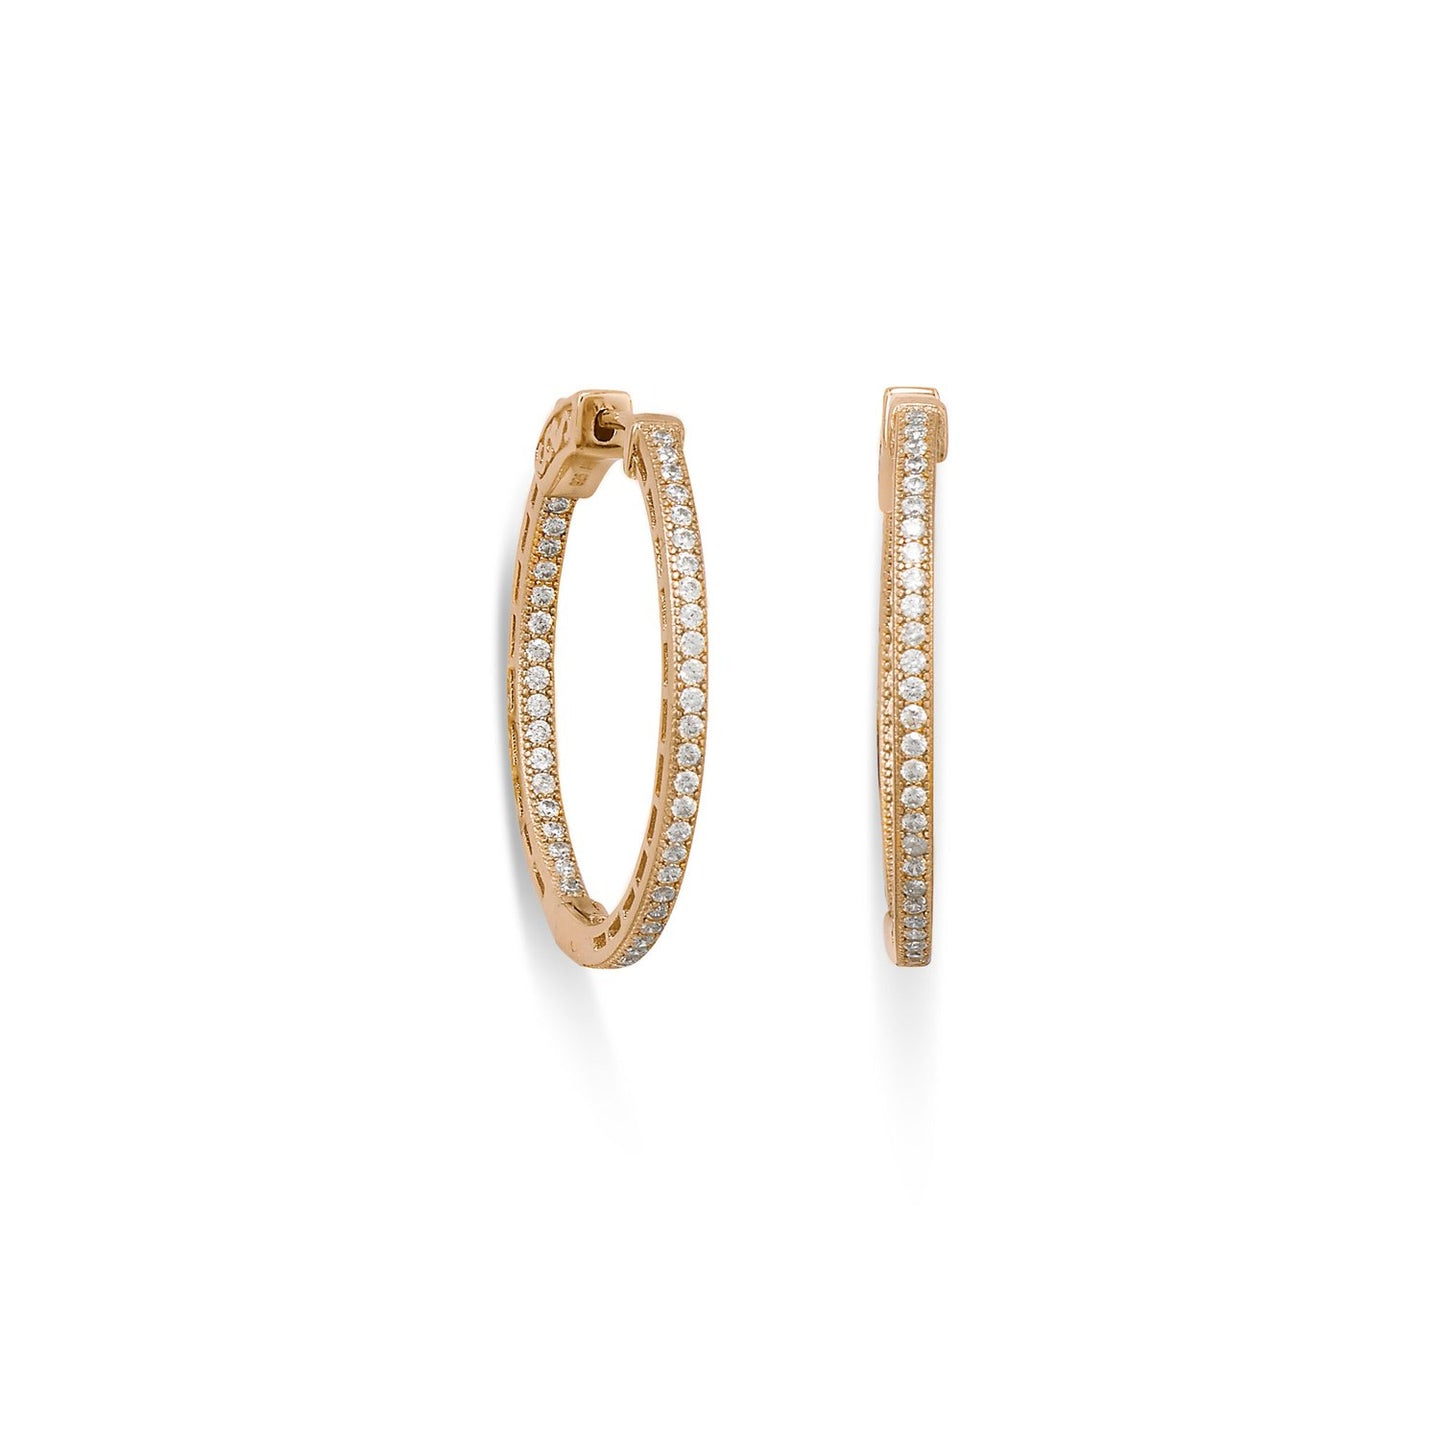 14 Karat Gold Plated Round In/Out CZ Hoop Earrings at 3 Barn Swallows, $100